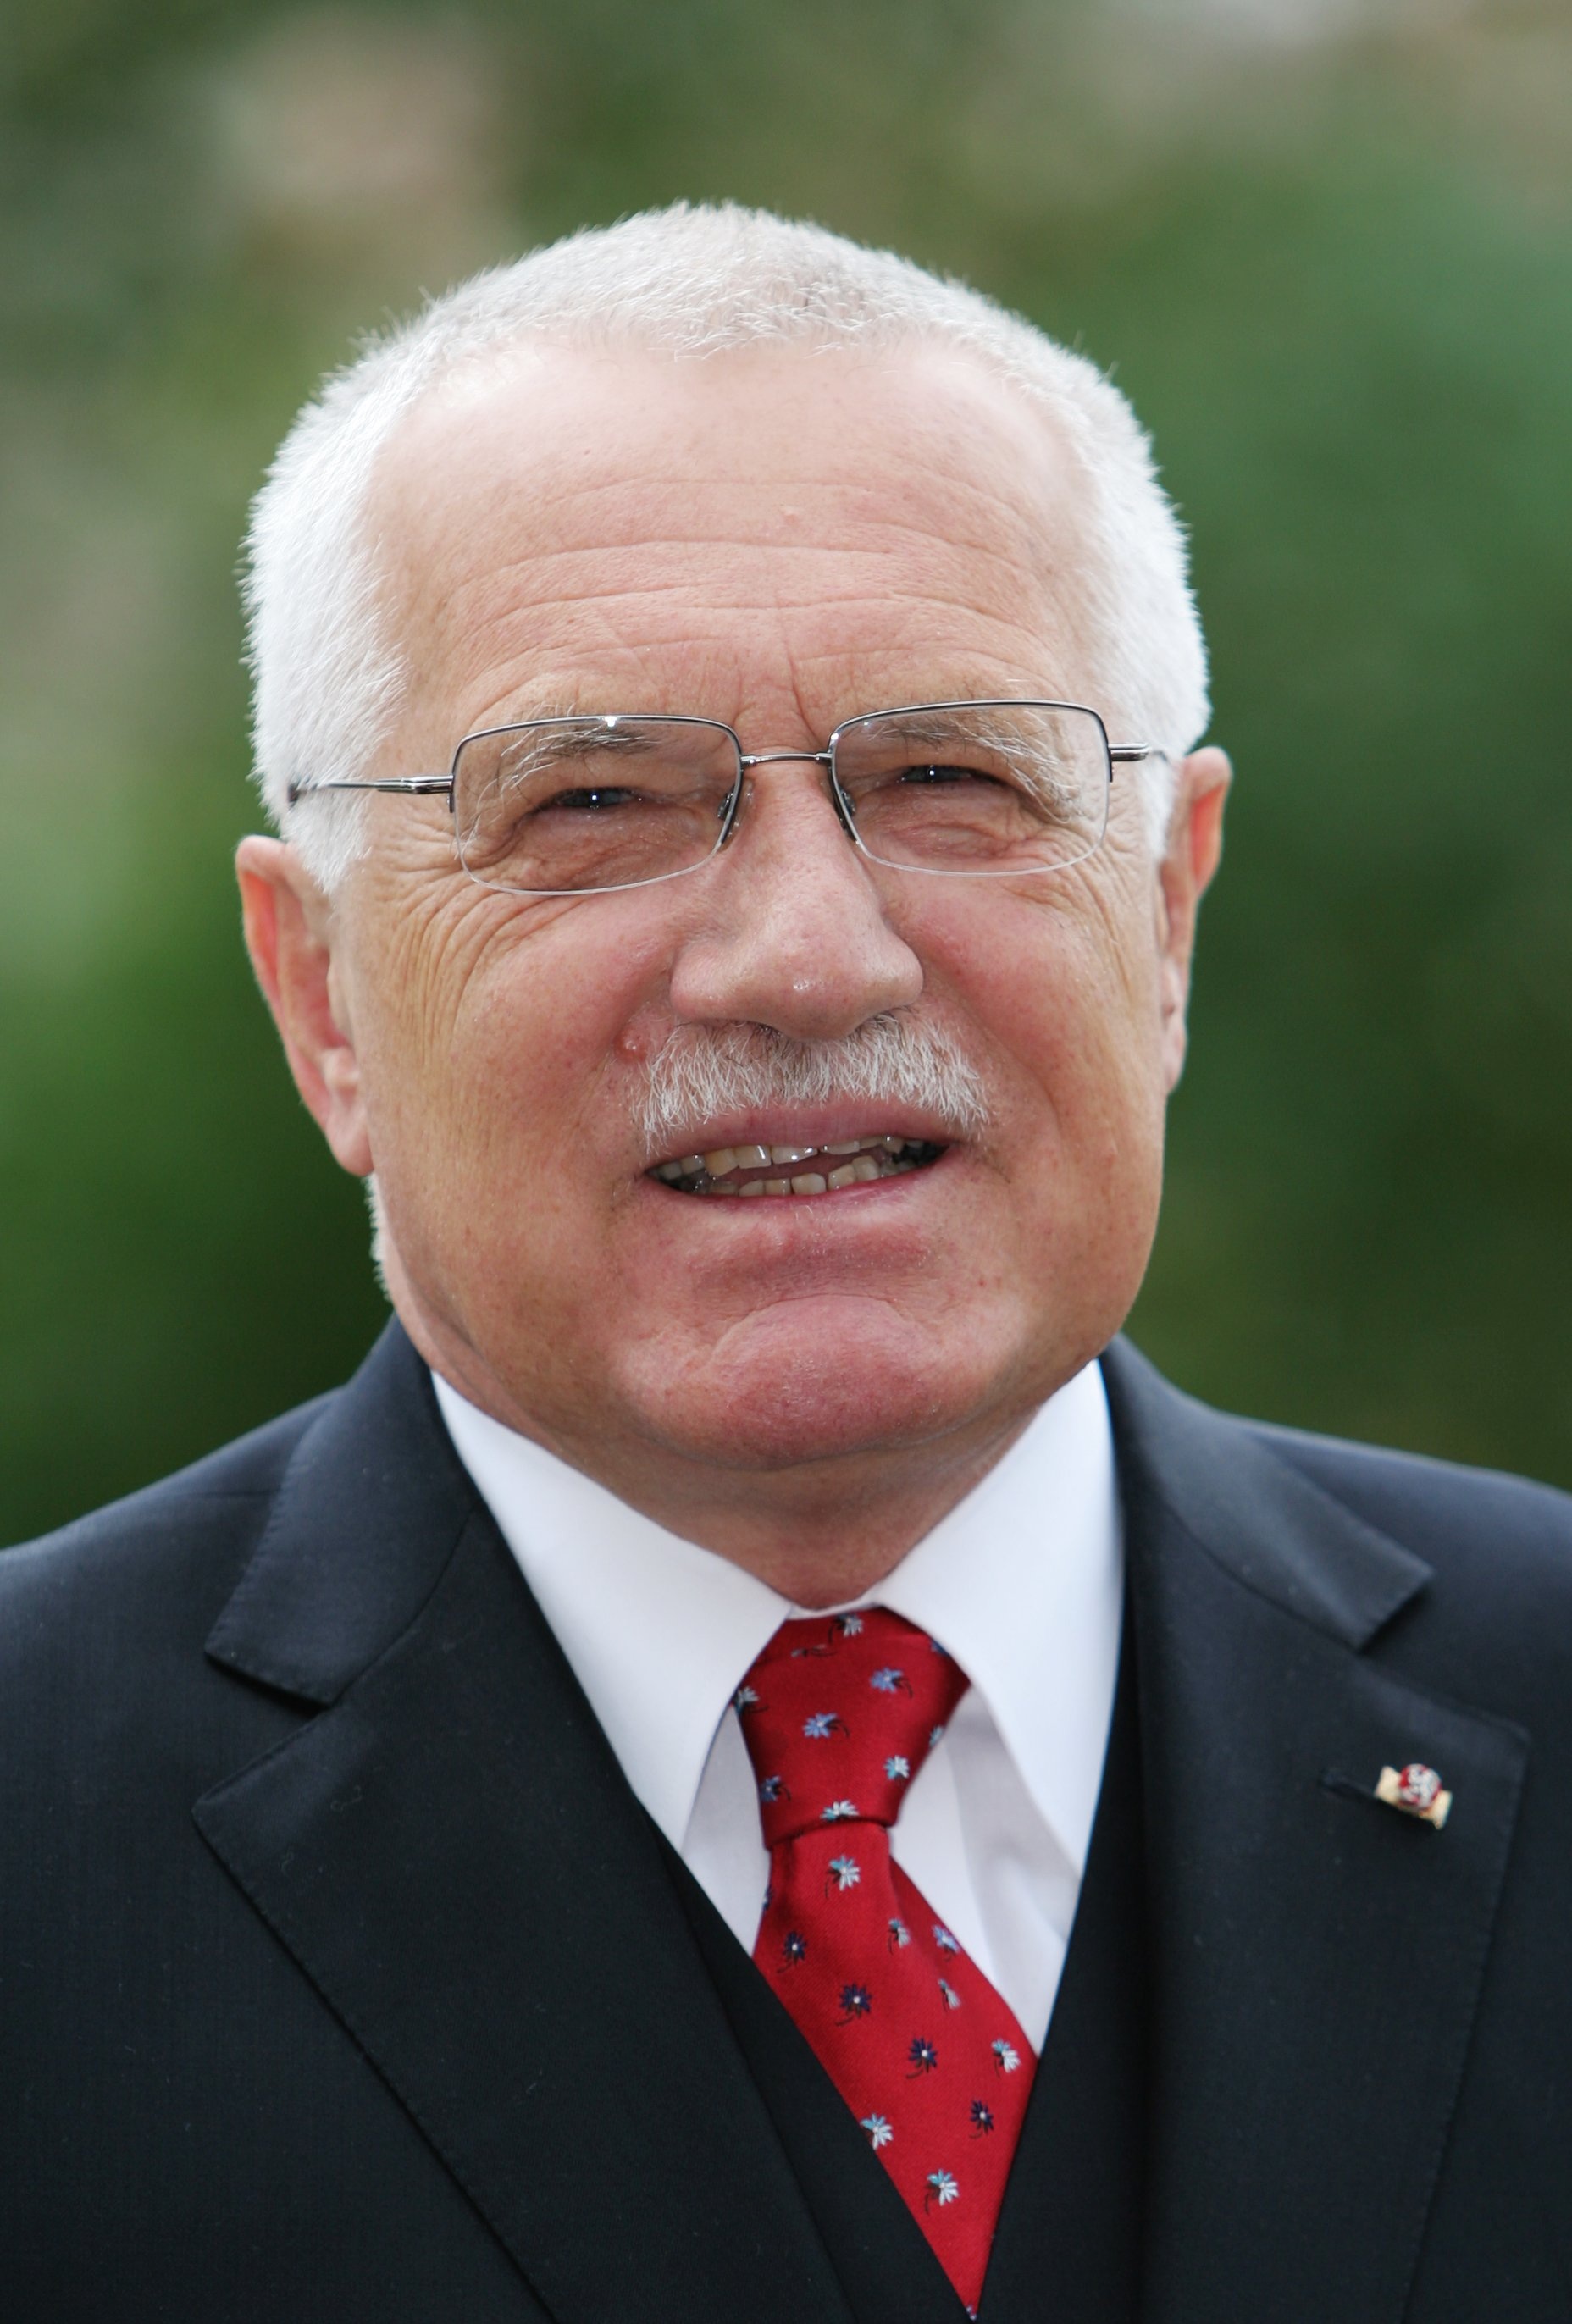 Vaclav Klaus's quote #4